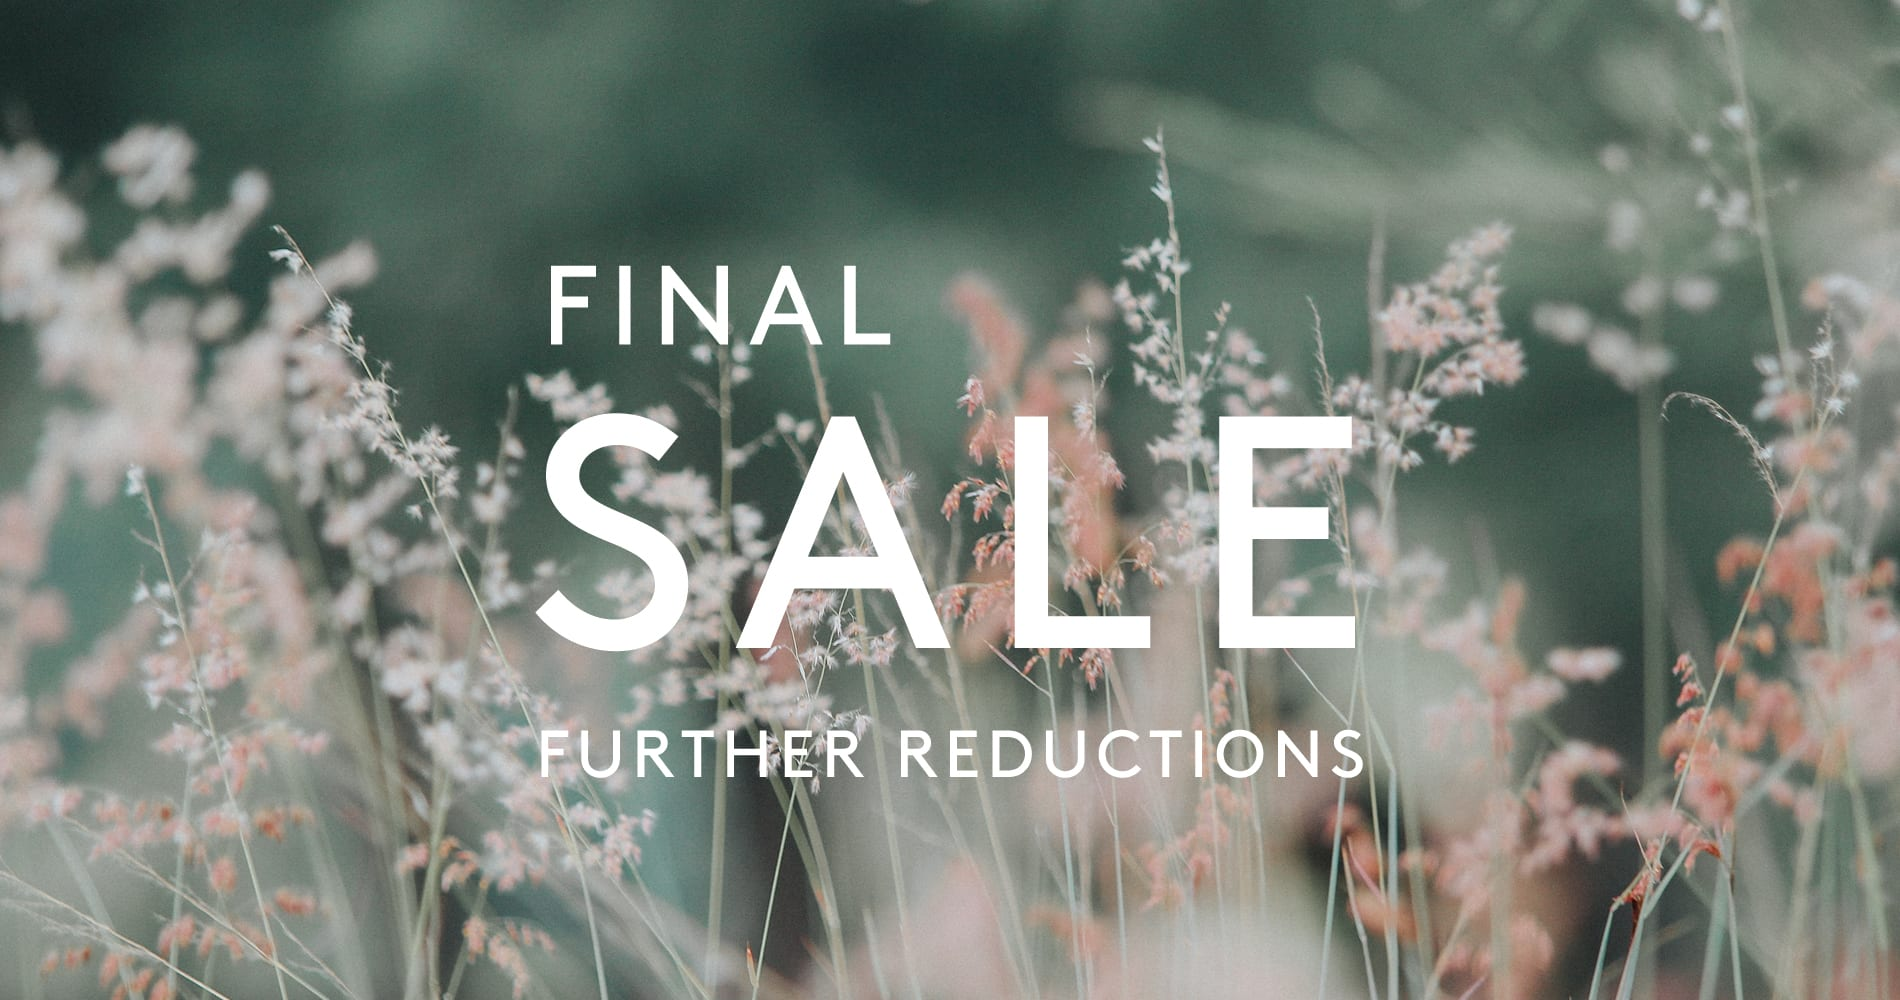 LUMI Final Sale starts now with further reductions. Hurry!